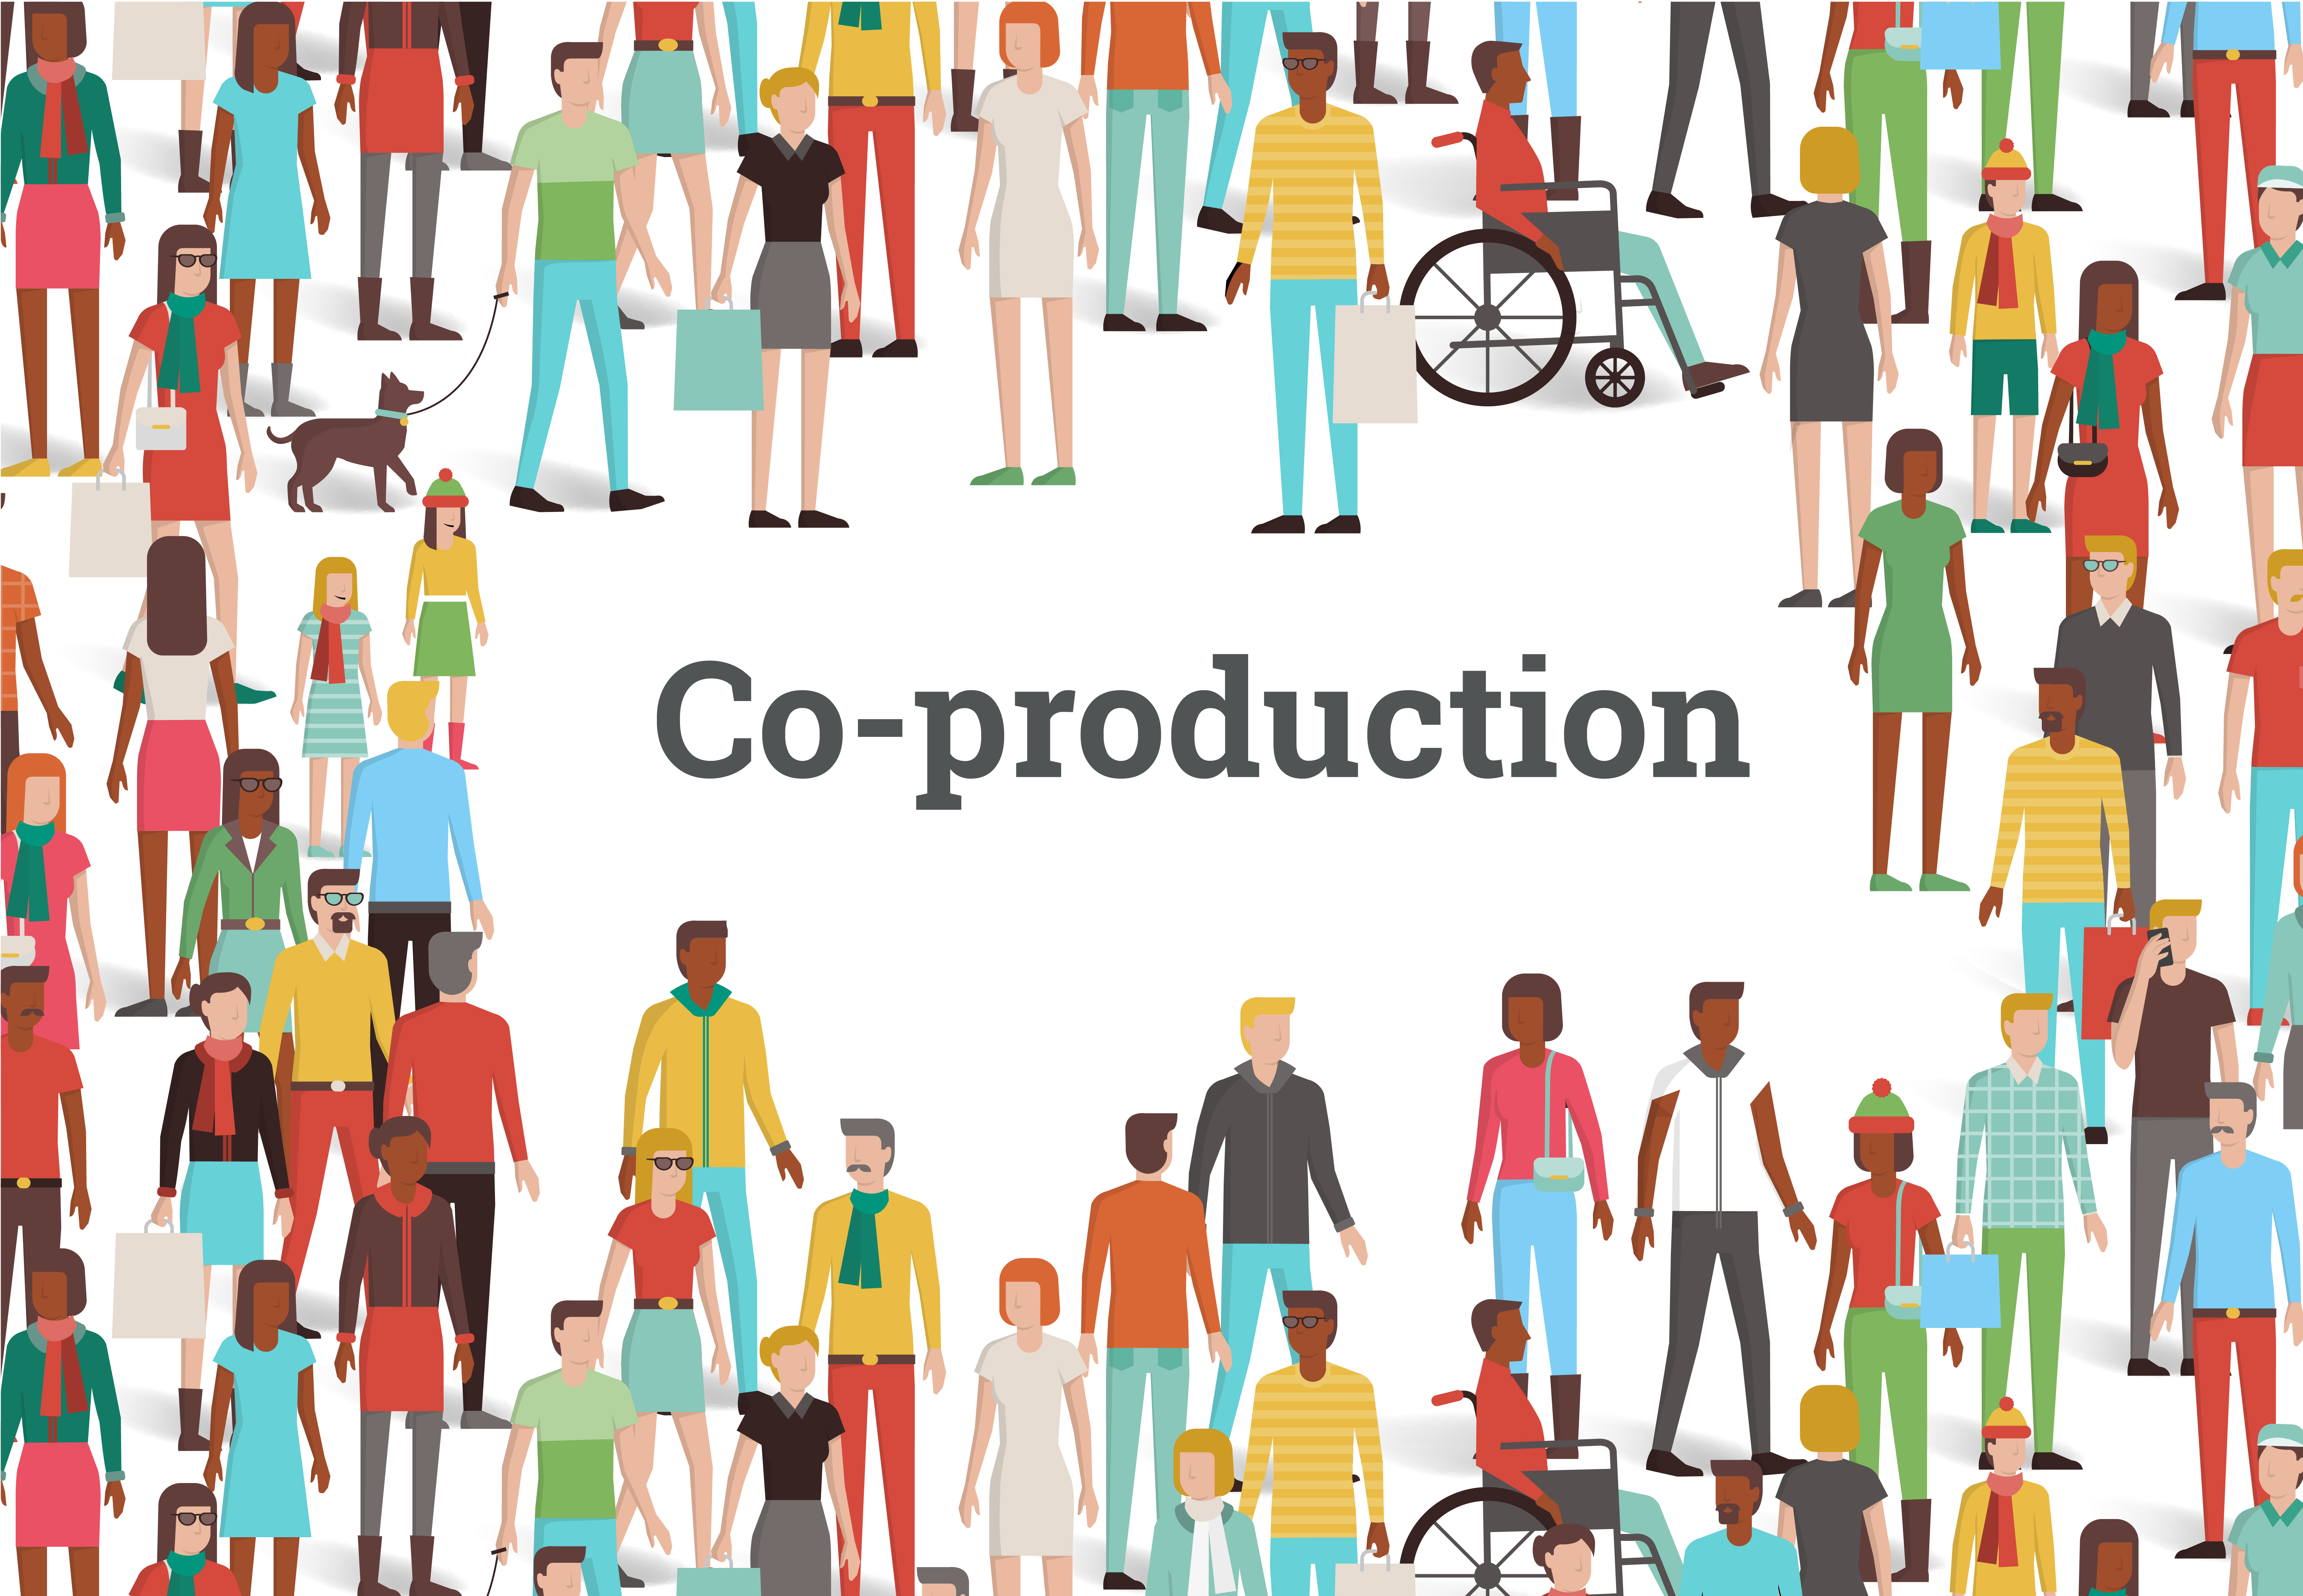 people-with coproduction